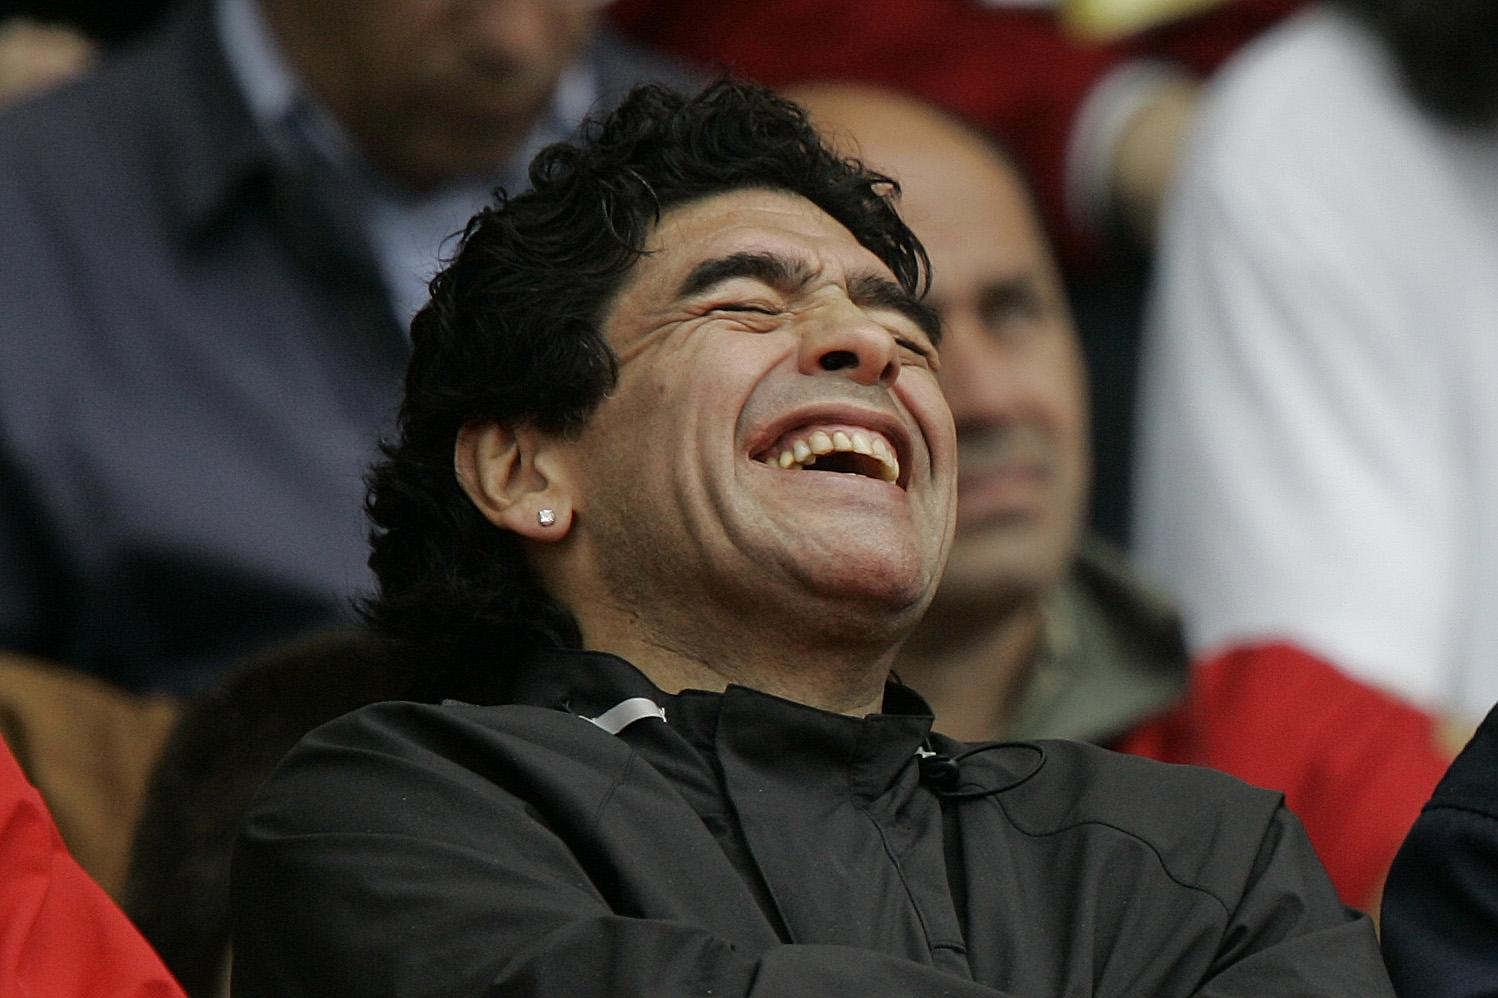 A laughing Maradona in 2005. Photo: AFP